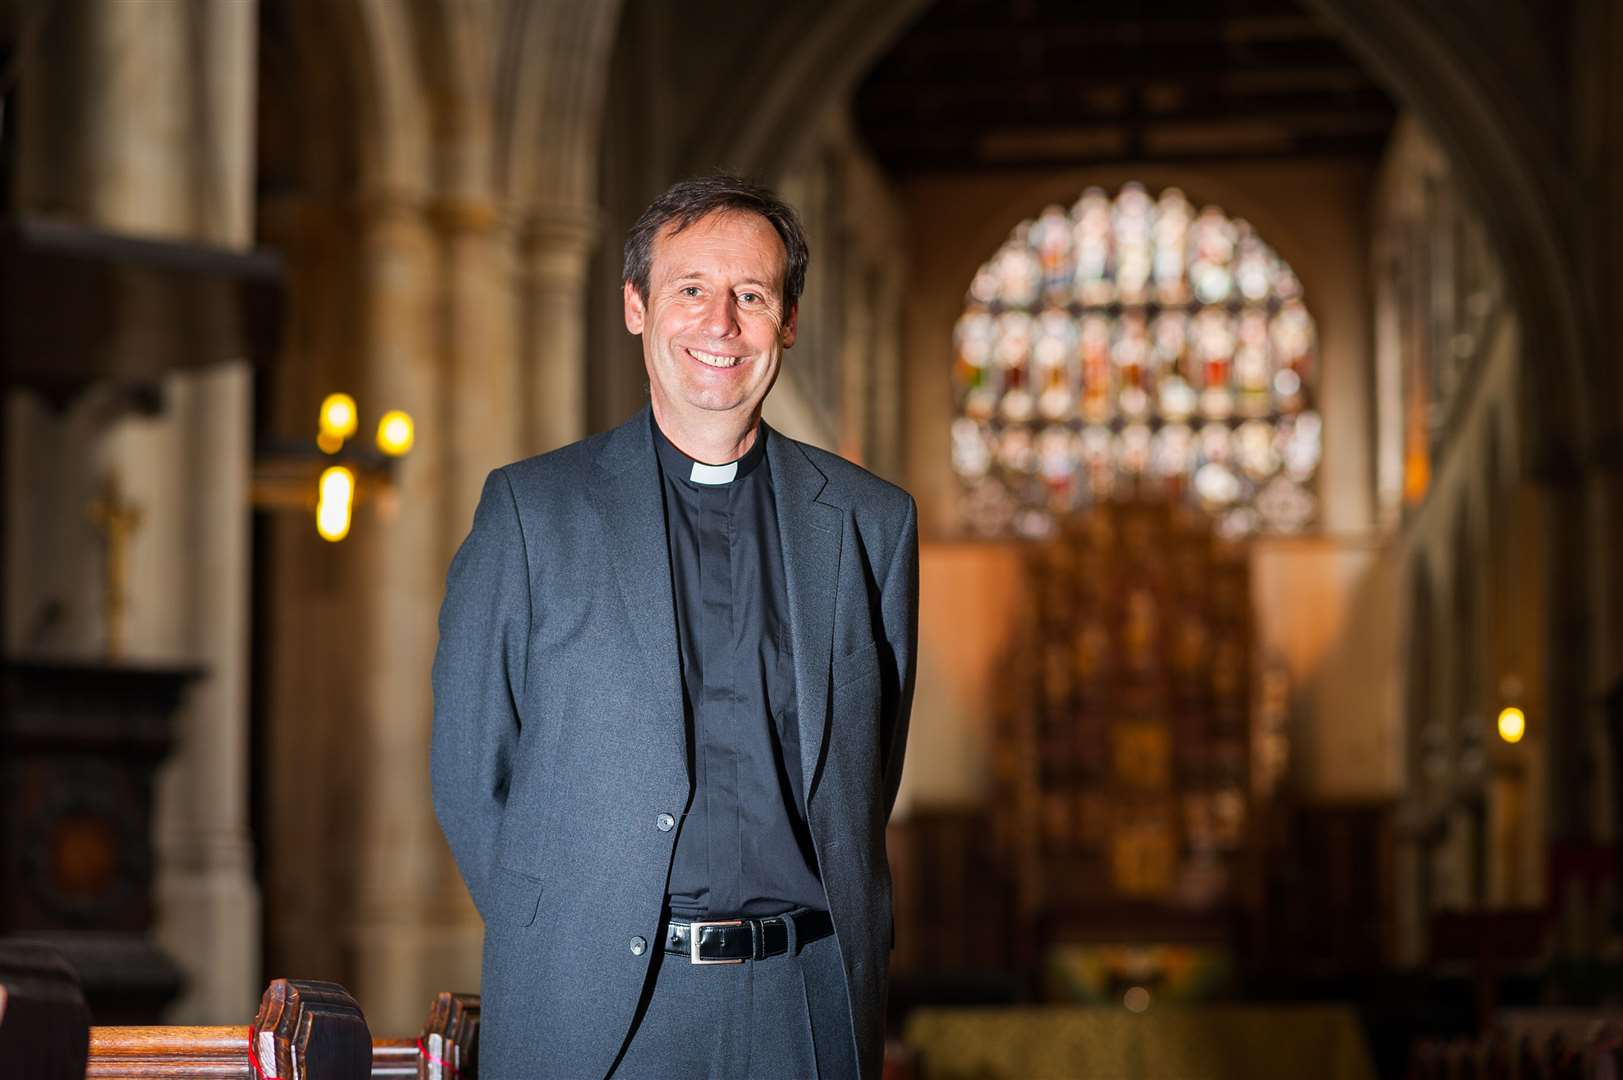 The new team rector at Lynn Minster - The Rev Canon Dr Mark Dimond